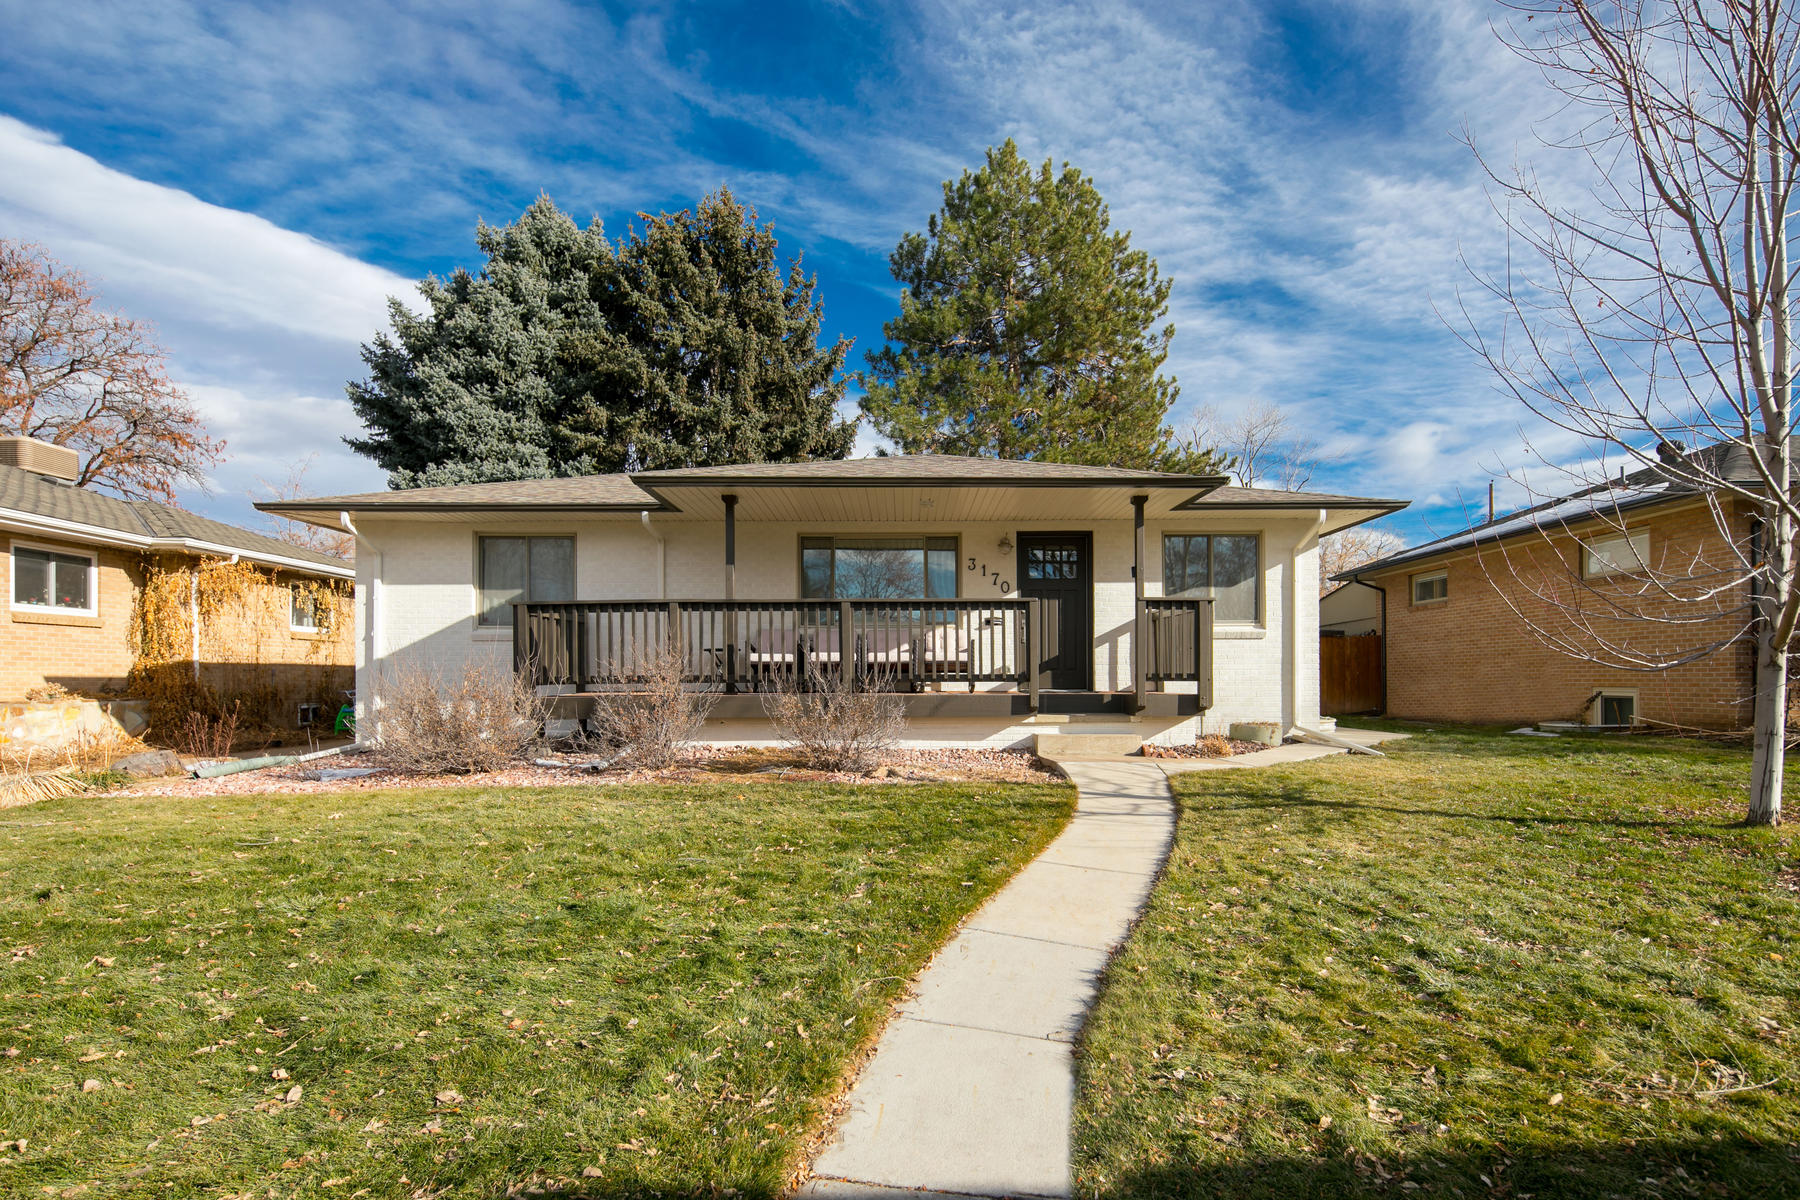 Single Family Homes for Active at This bright, newly remodeled home in Englewood is the perfect place to call home 3170 S Humboldt St. Englewood, Colorado 80113 United States